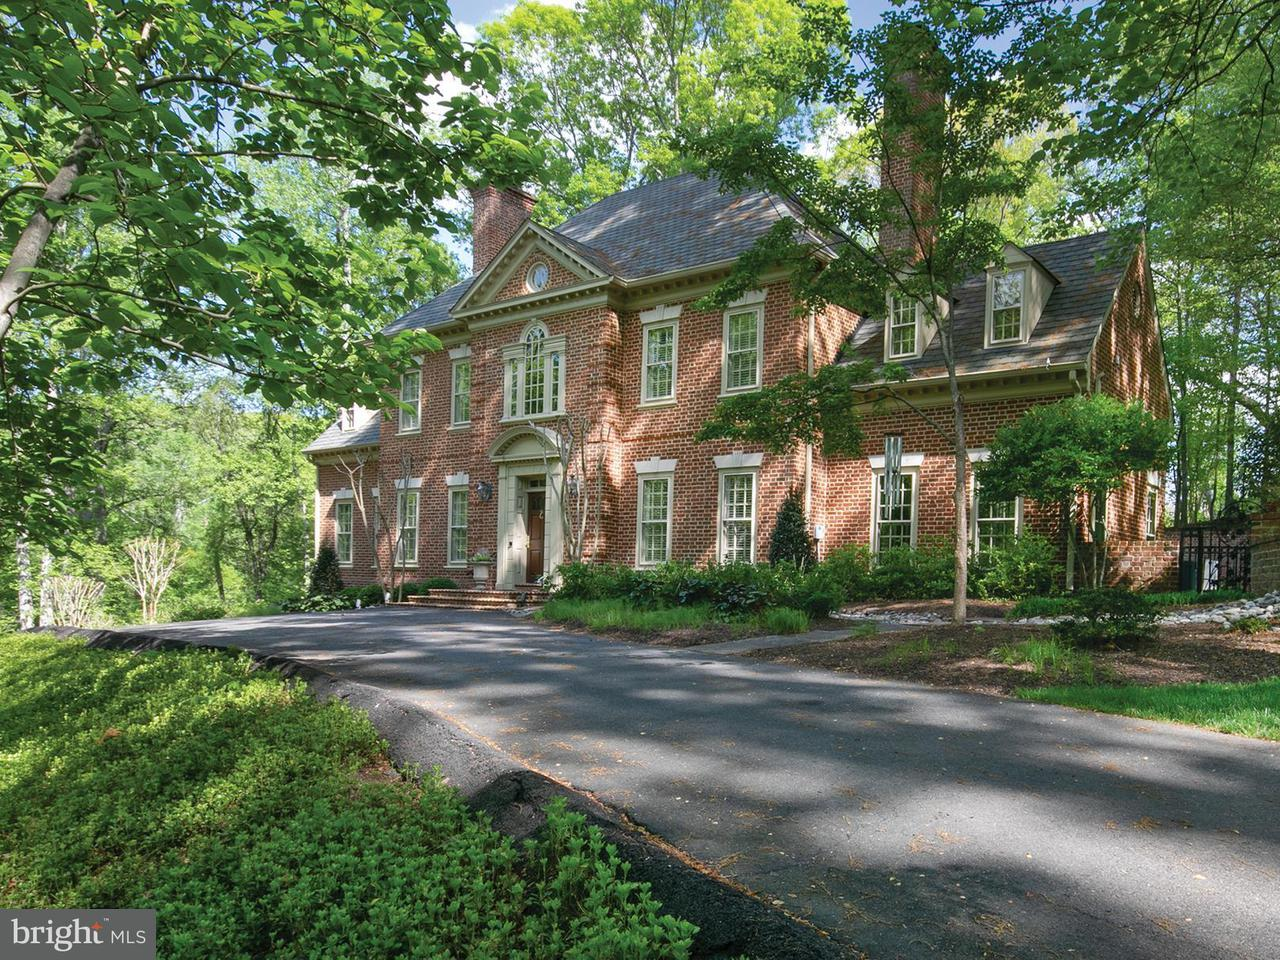 Single Family Home for Sale at 921 TOWLSTON Road 921 TOWLSTON Road McLean, Virginia 22102 United States